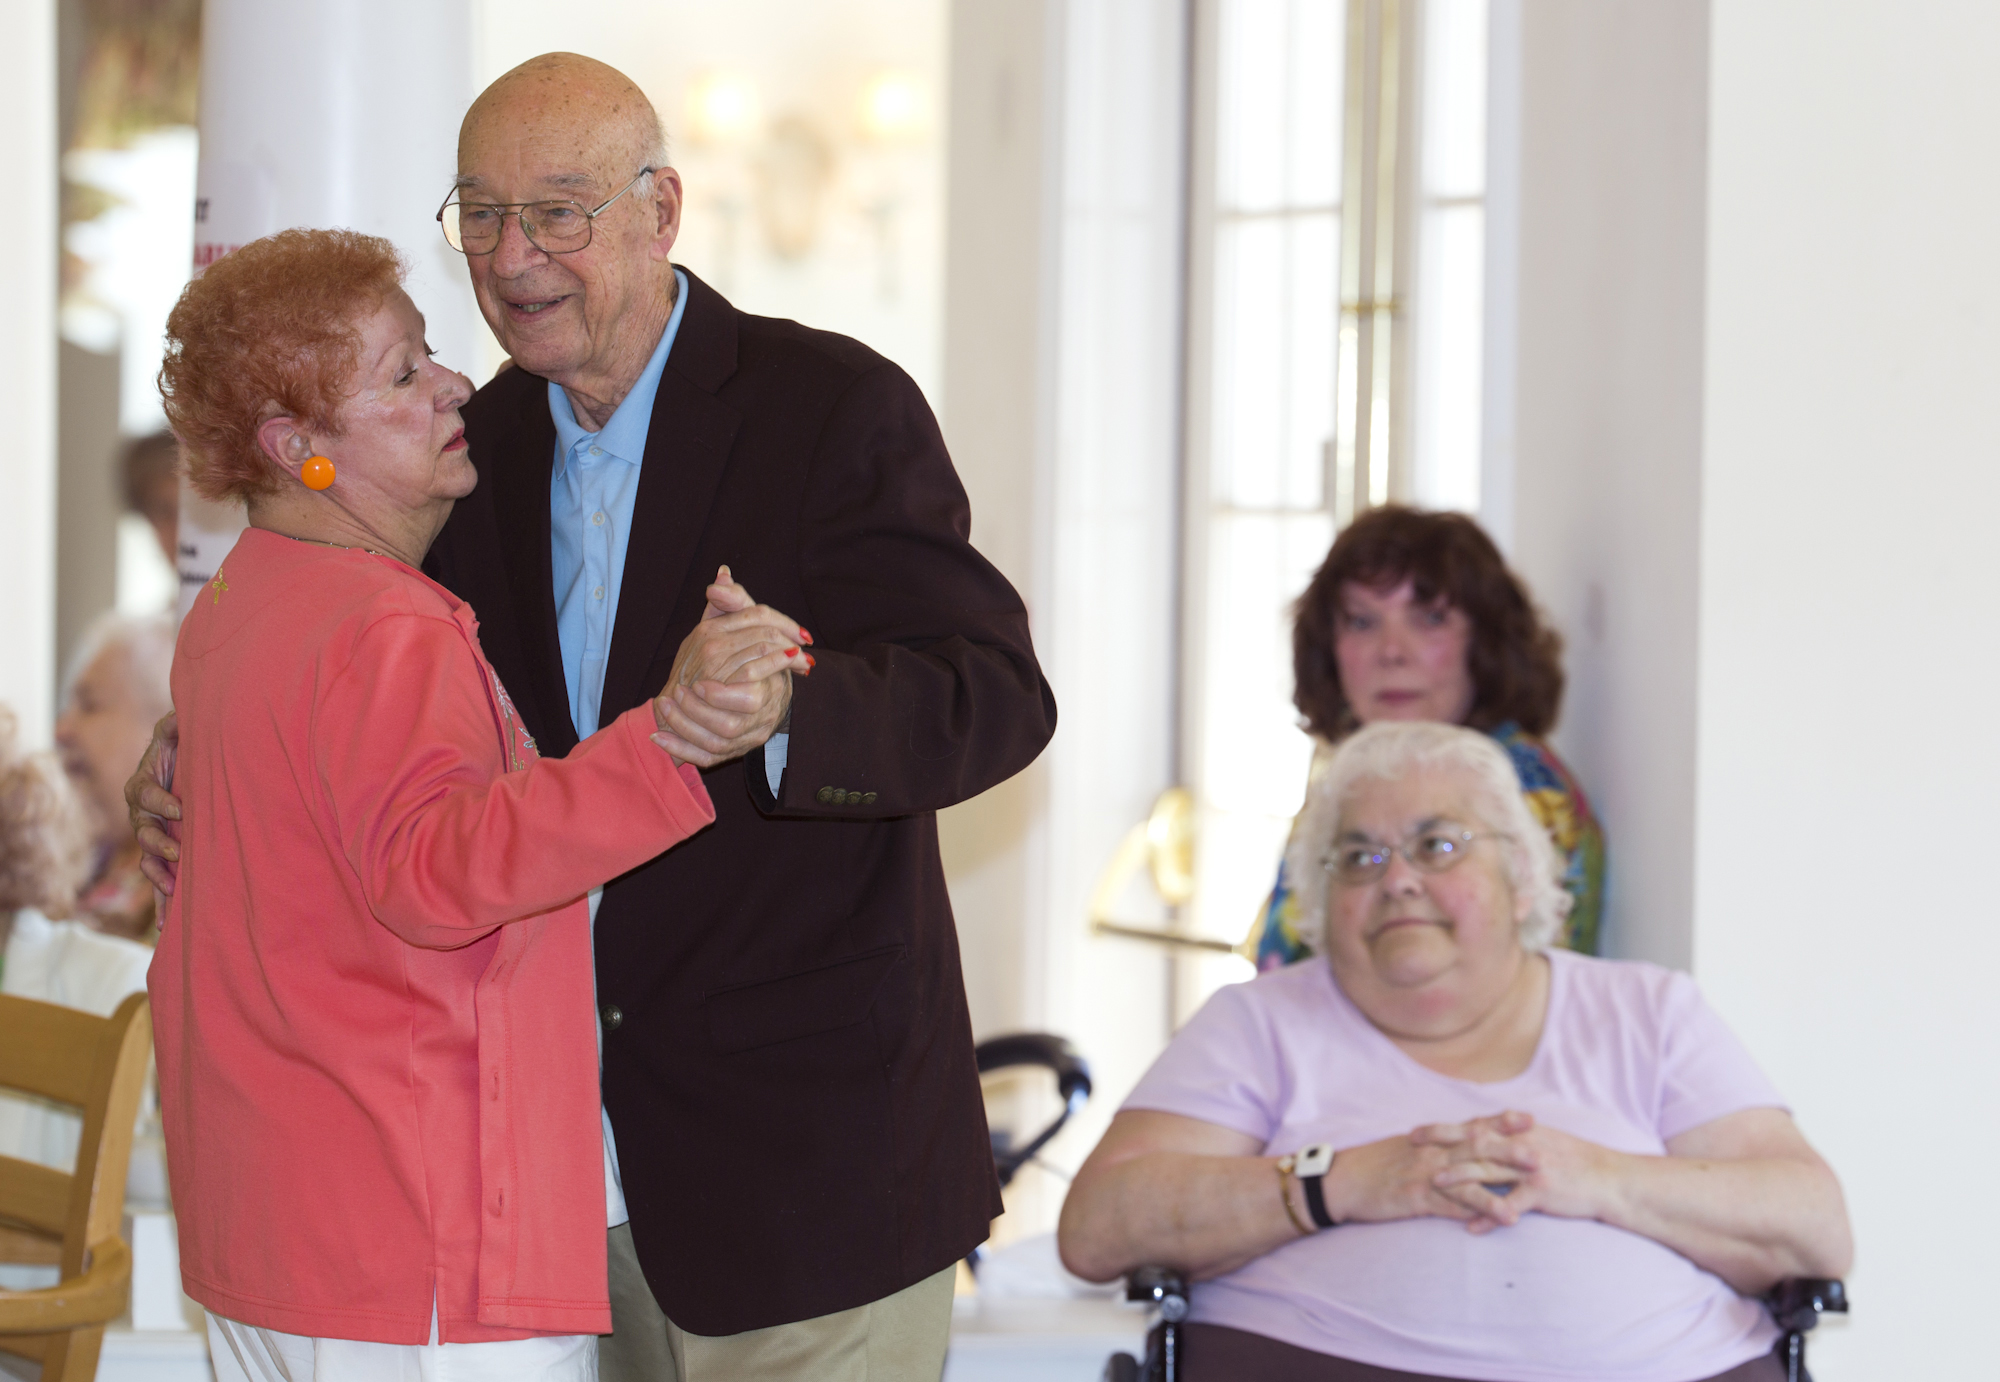 Joyce and Frank dance at Legacy Senior Living Communities, where they first met.Their love for dancing keeps them coming back to the Legacy every week for musical performances.